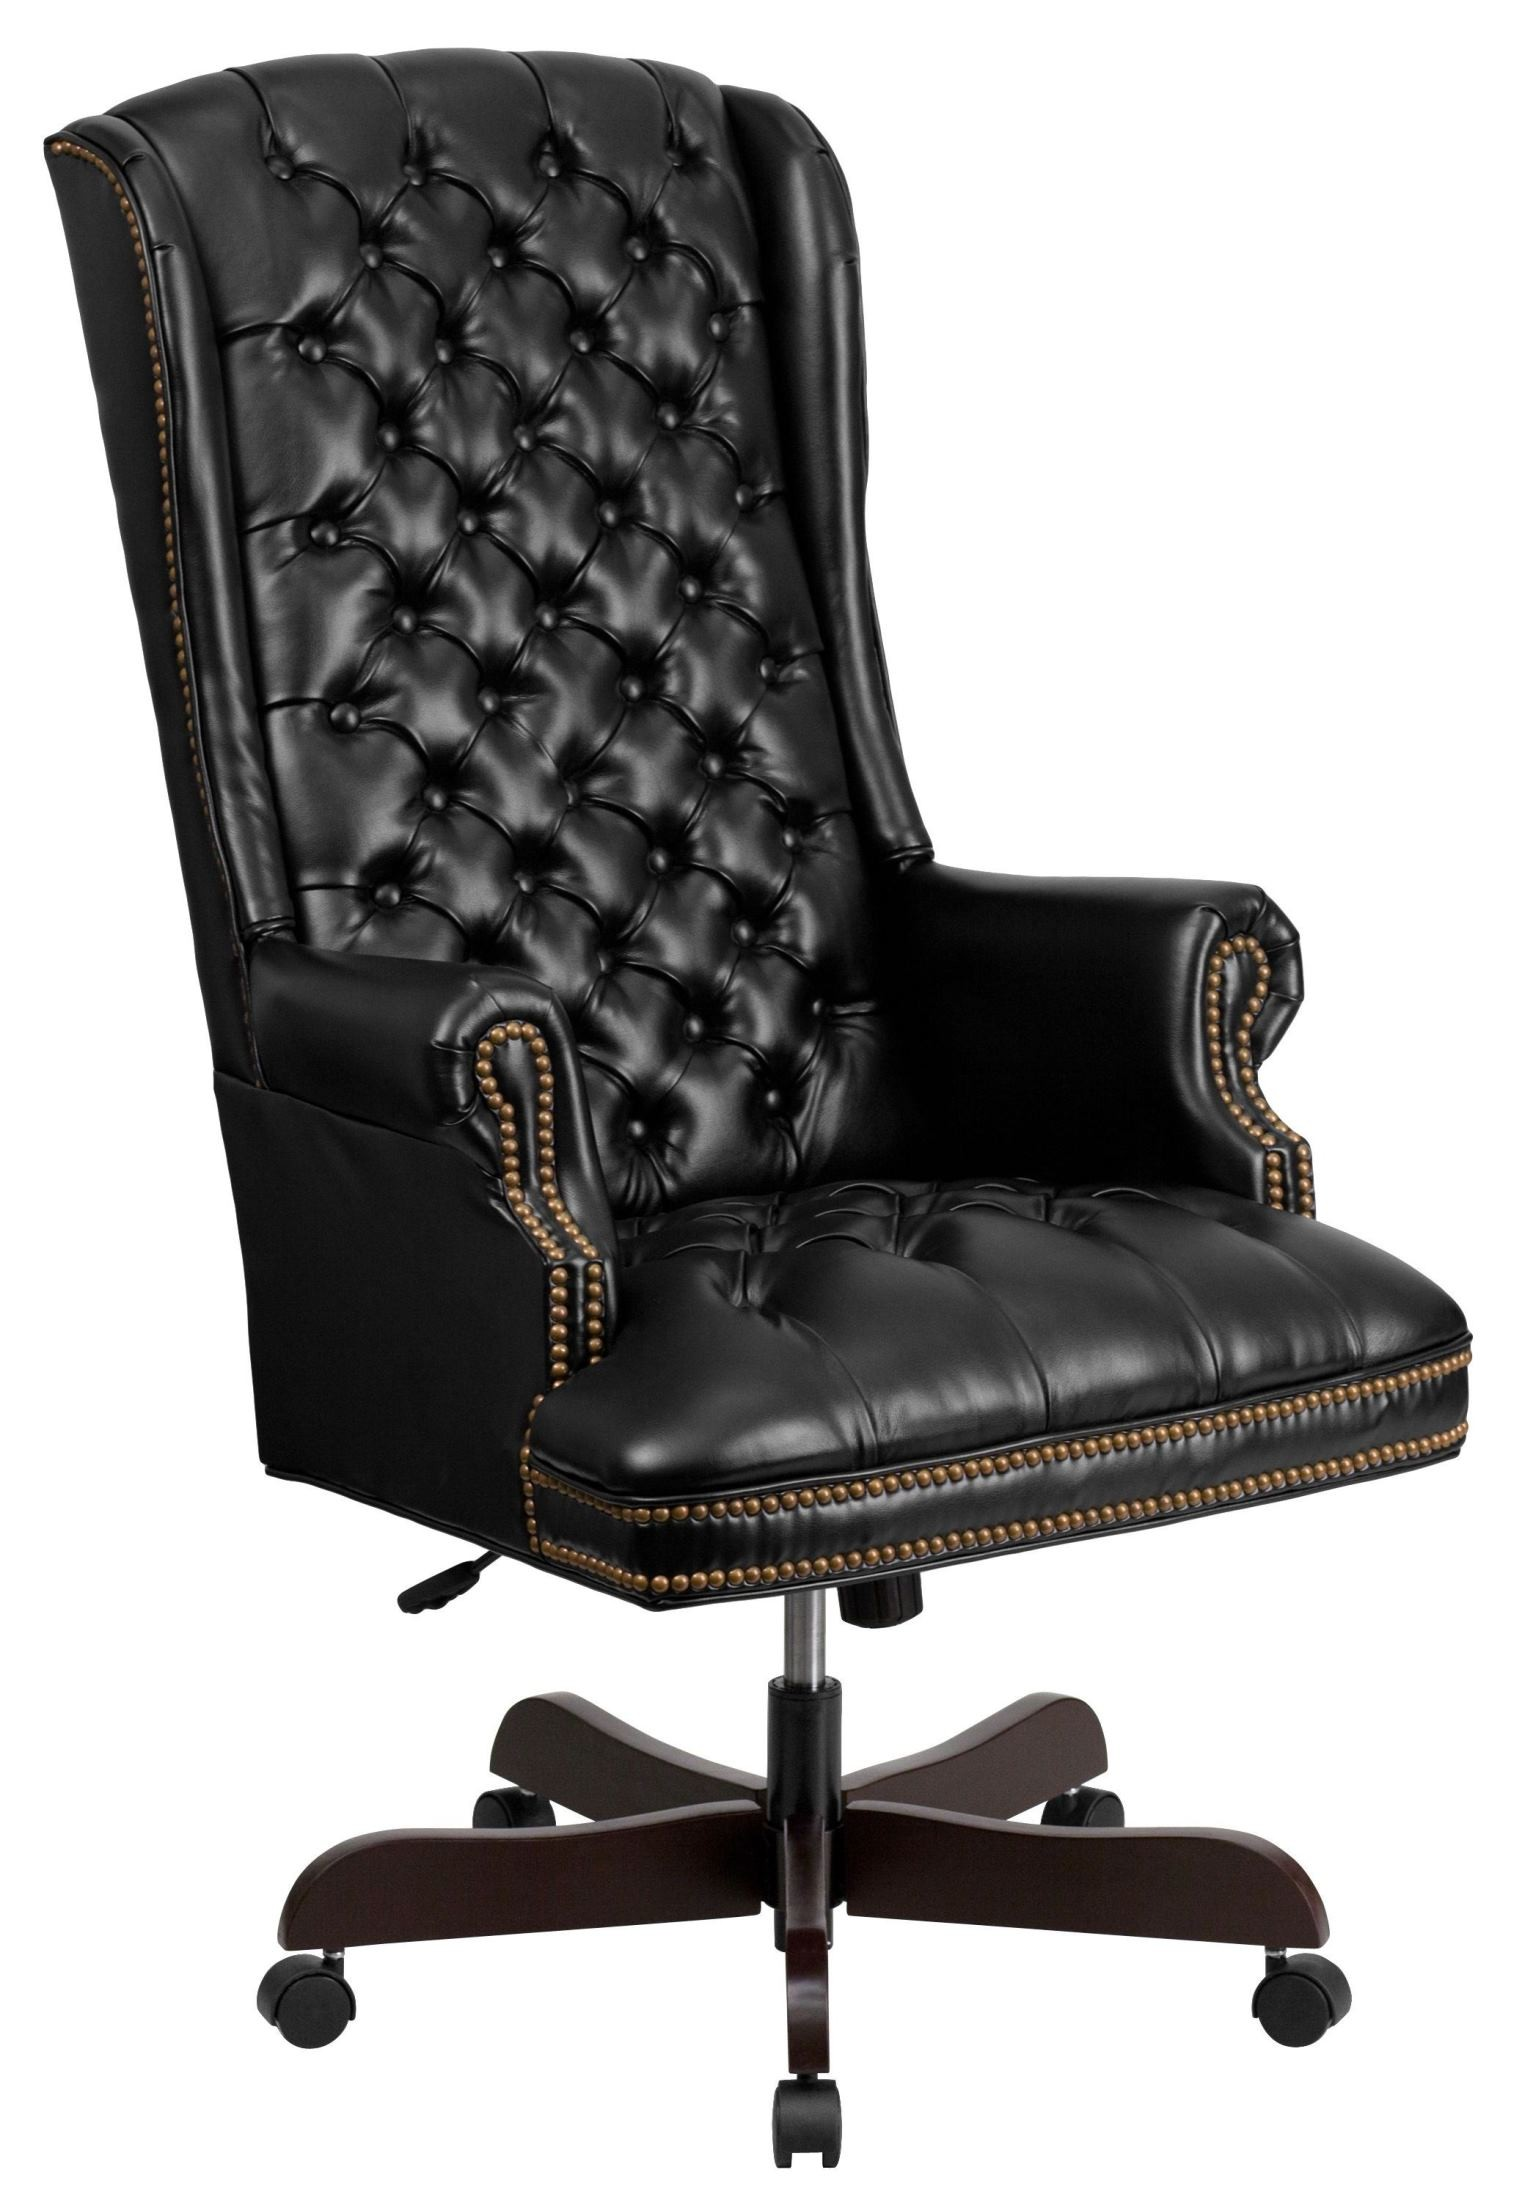 360 high back tufted black leather executive office chair. Black Bedroom Furniture Sets. Home Design Ideas